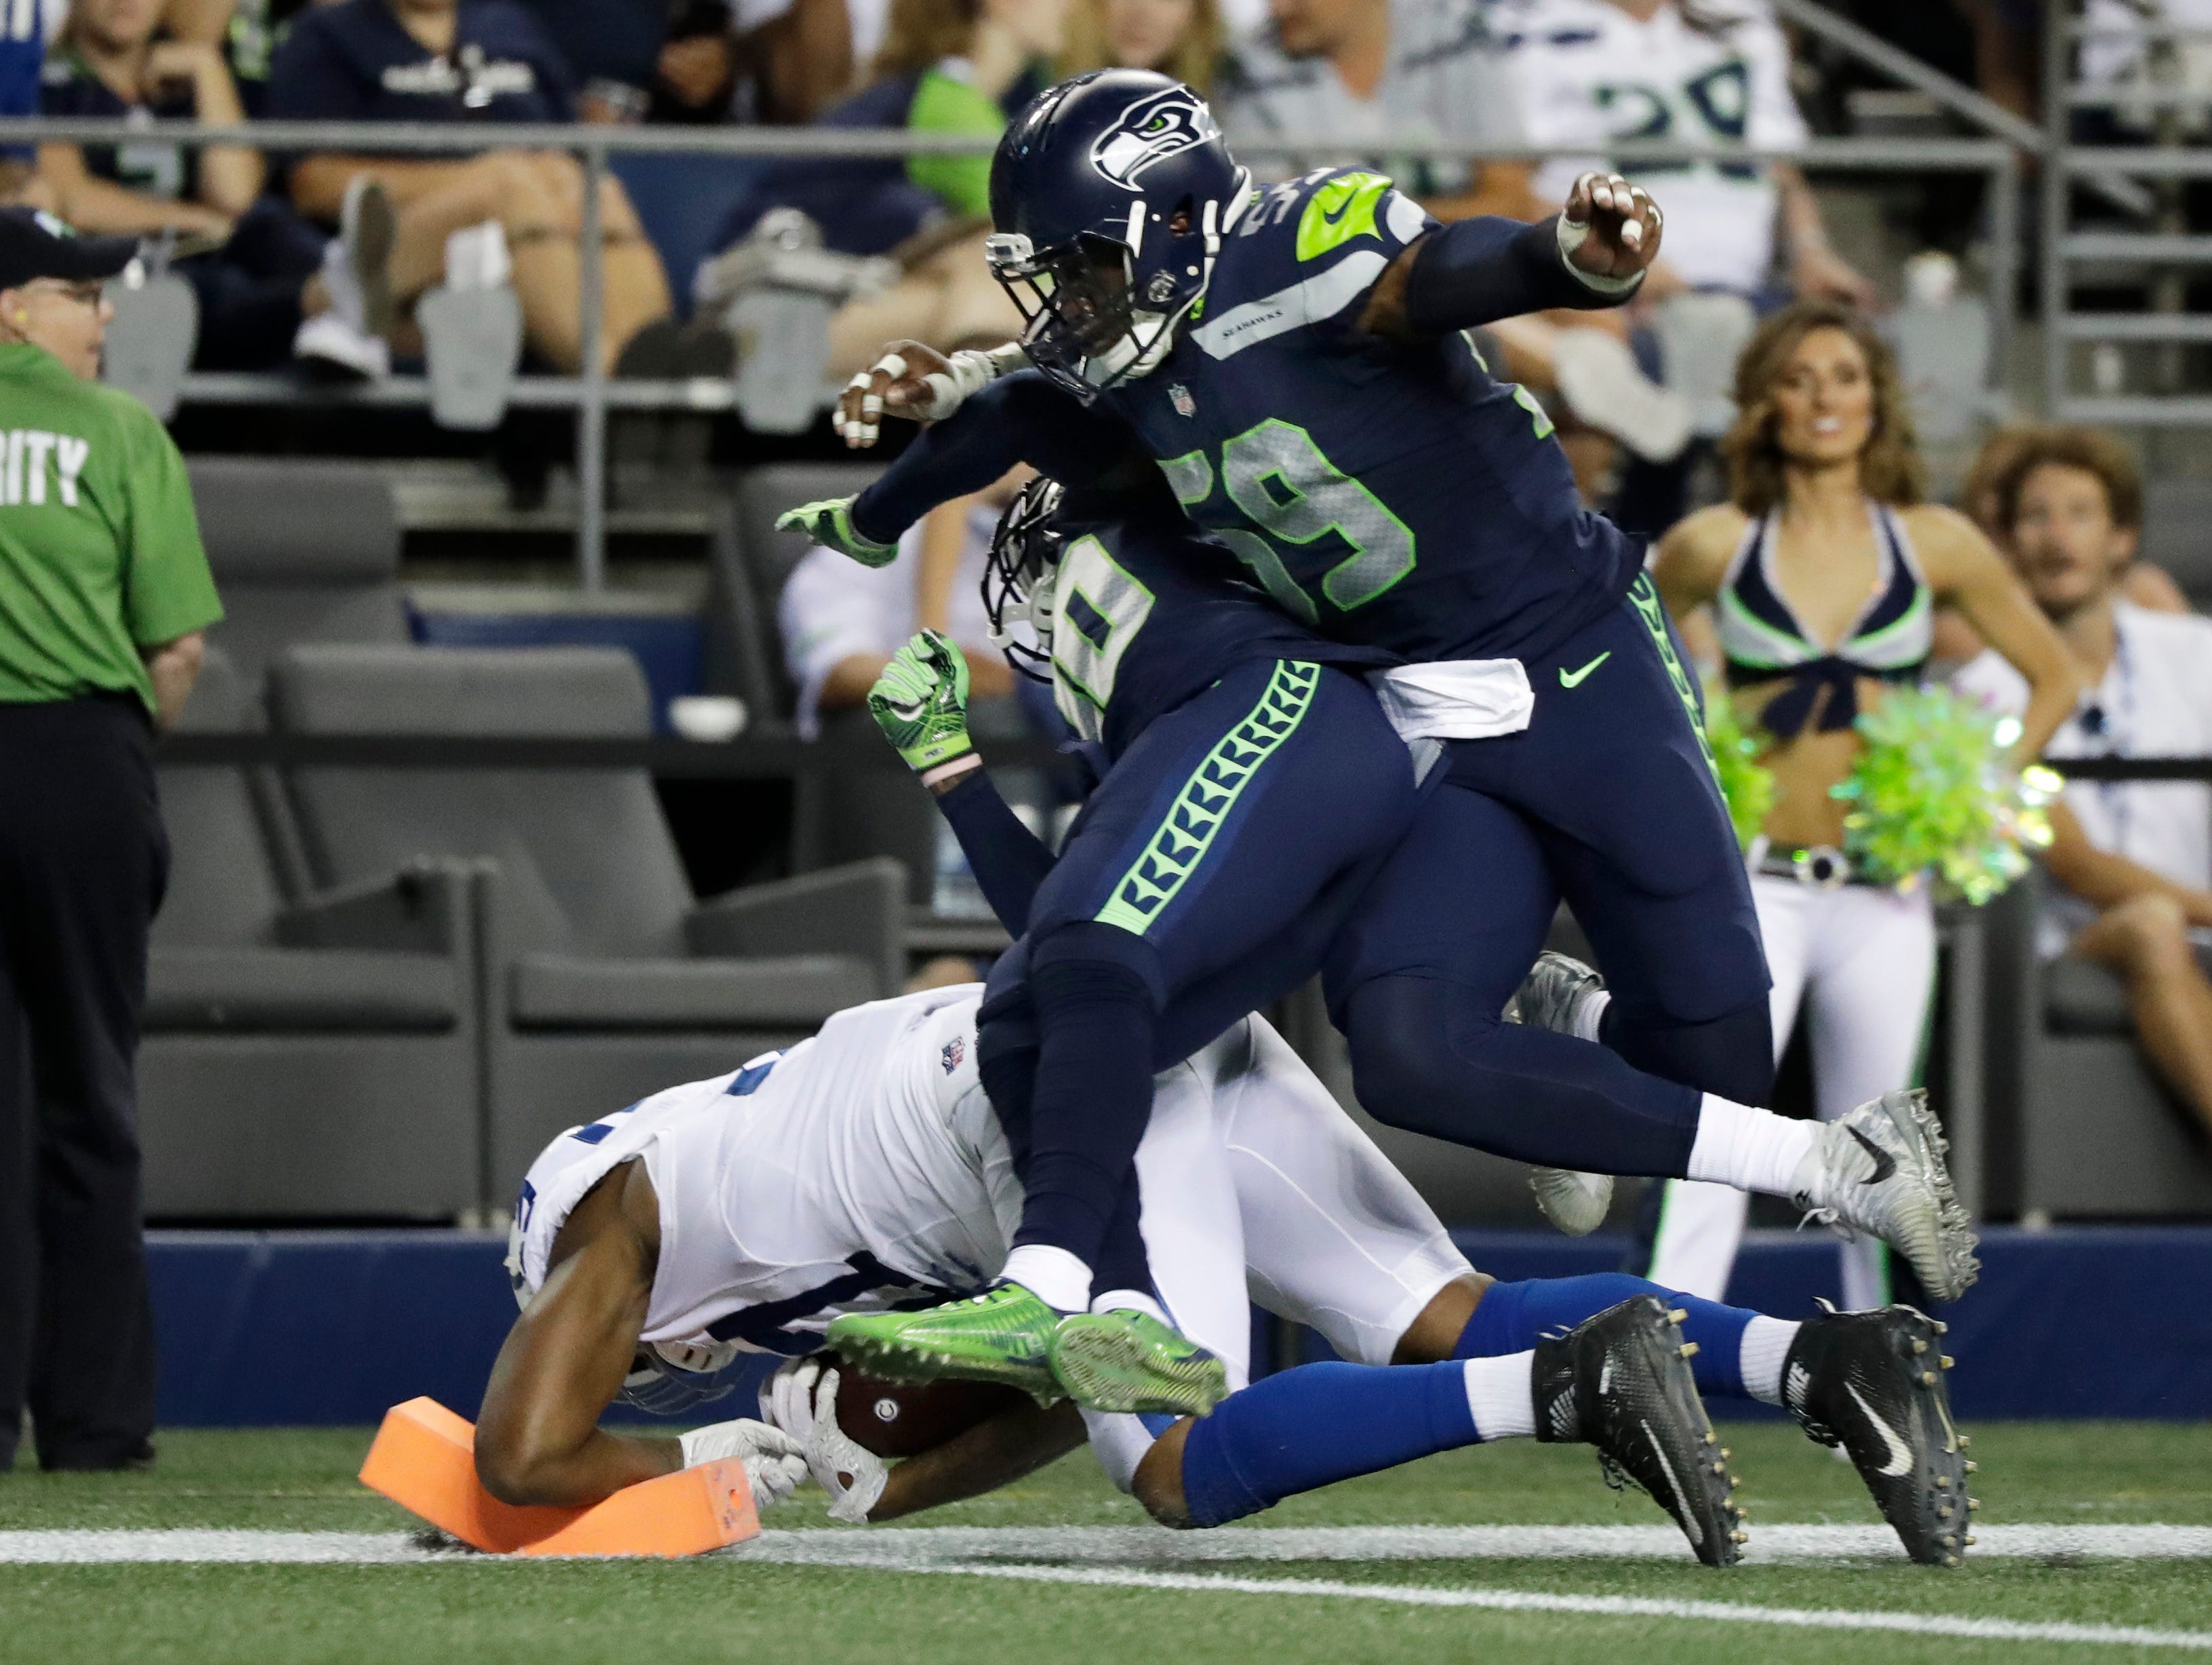 Indianapolis Colts tight end Darrell Daniels, lower left, crashes into a pylon for a touchdown under the defense of Seattle Seahawks defensive end Jake Martin (59), and free safety Lorenzo Jerome, center, during the second half of an NFL football preseason game, Thursday, Aug. 9, 2018, in Seattle. (AP Photo/Elaine Thompson)